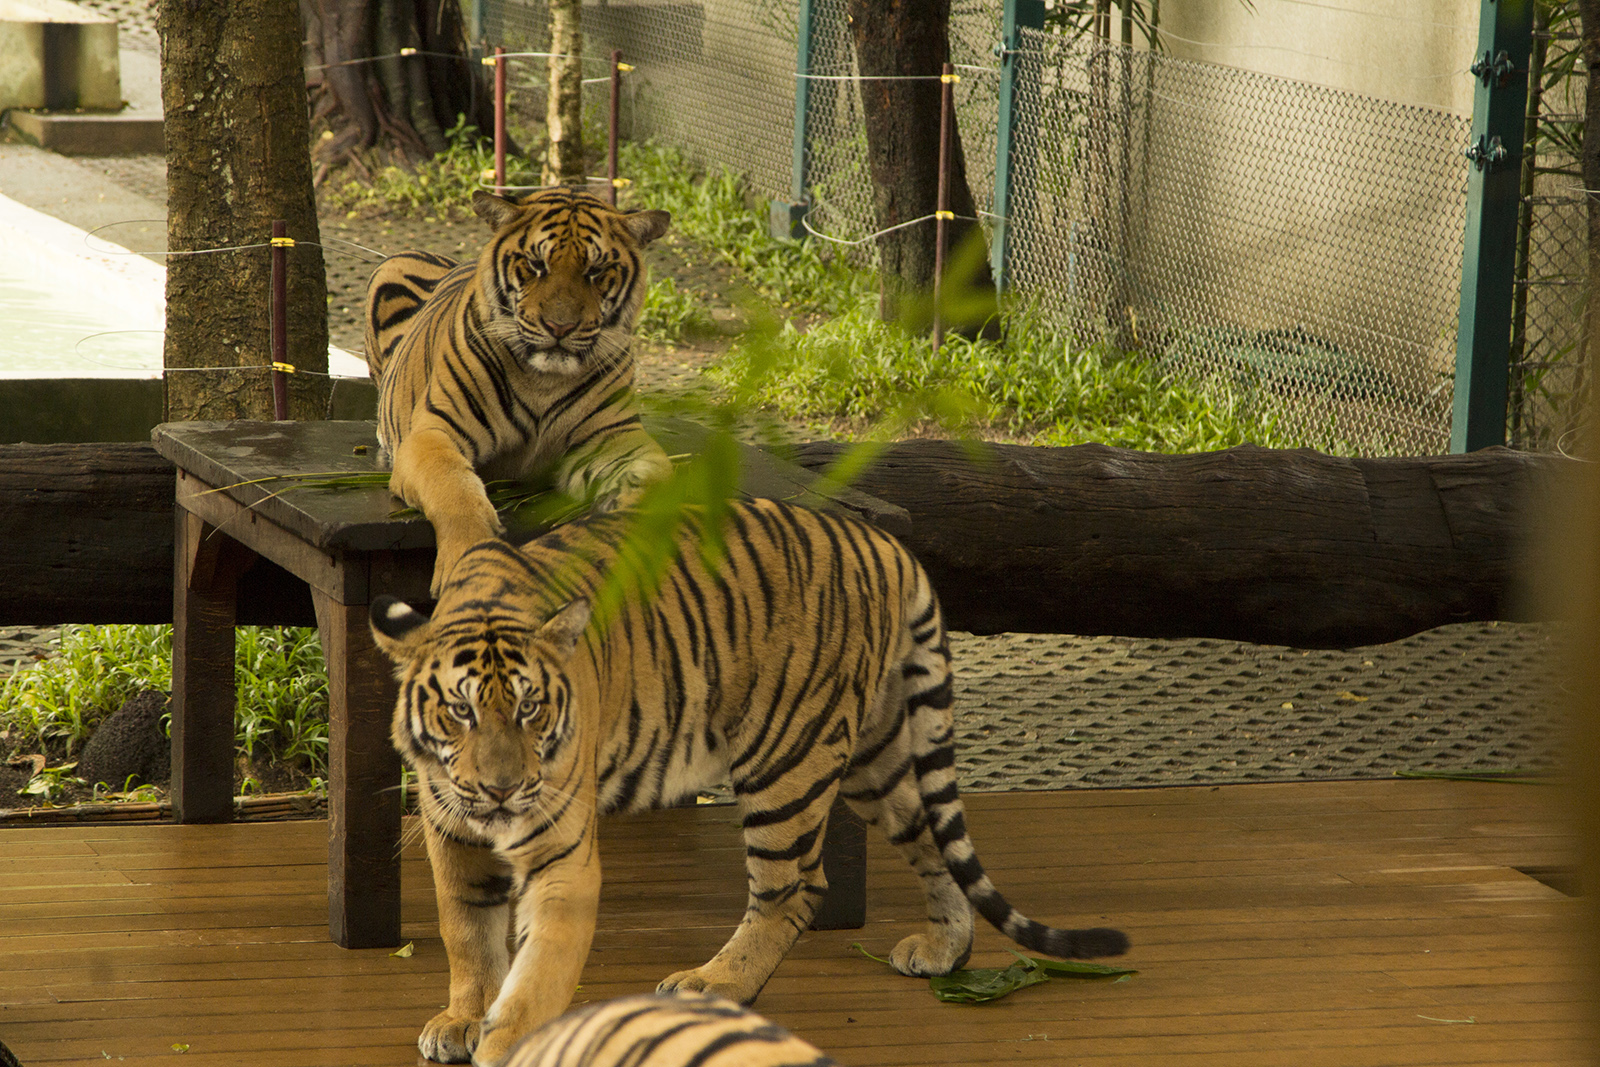 tigers in an enclosure